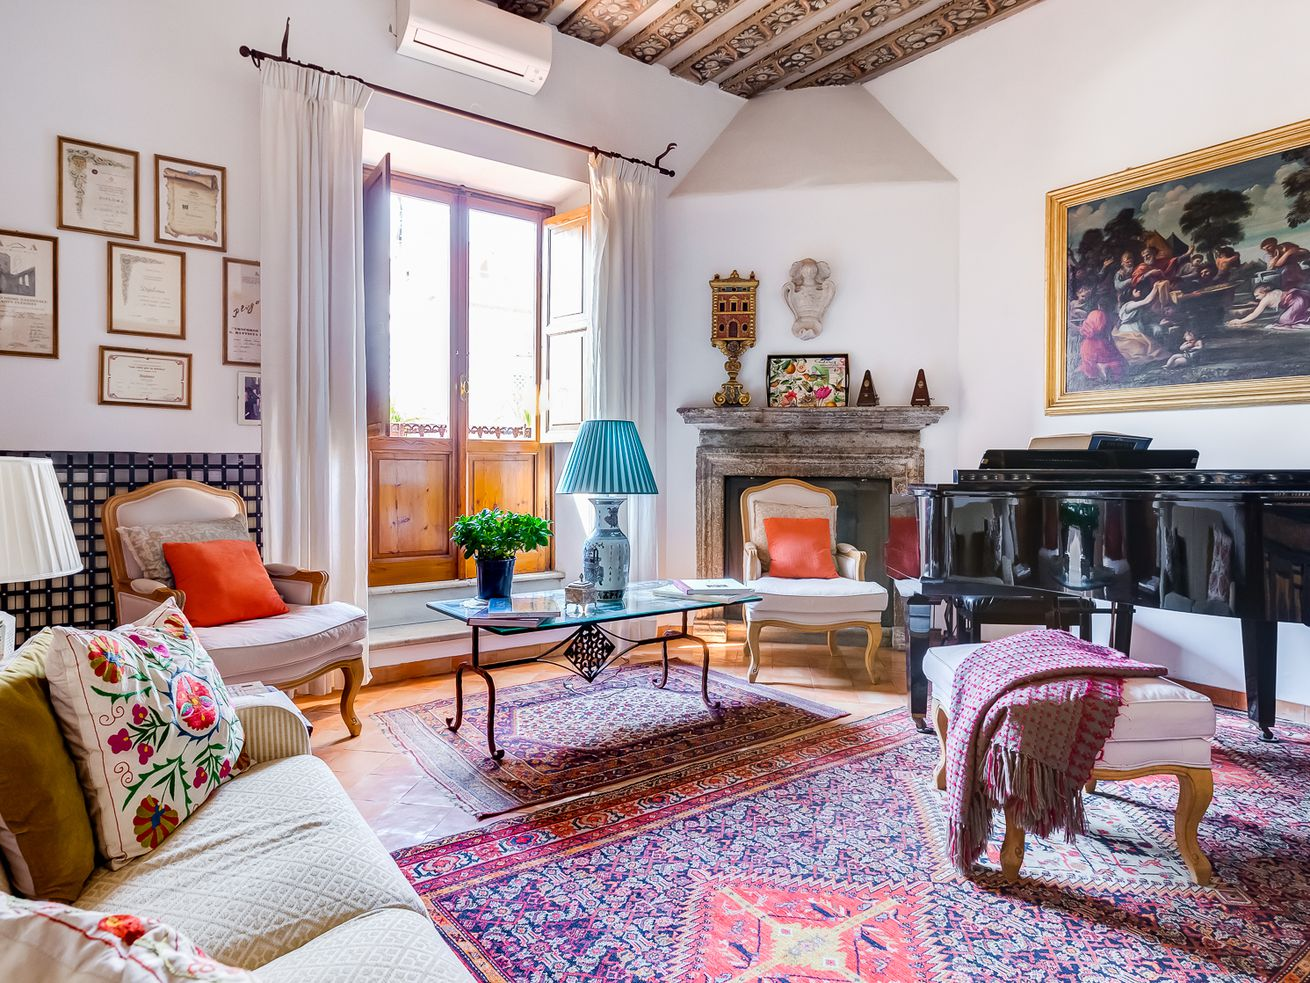 The 10 best alternatives to Airbnb